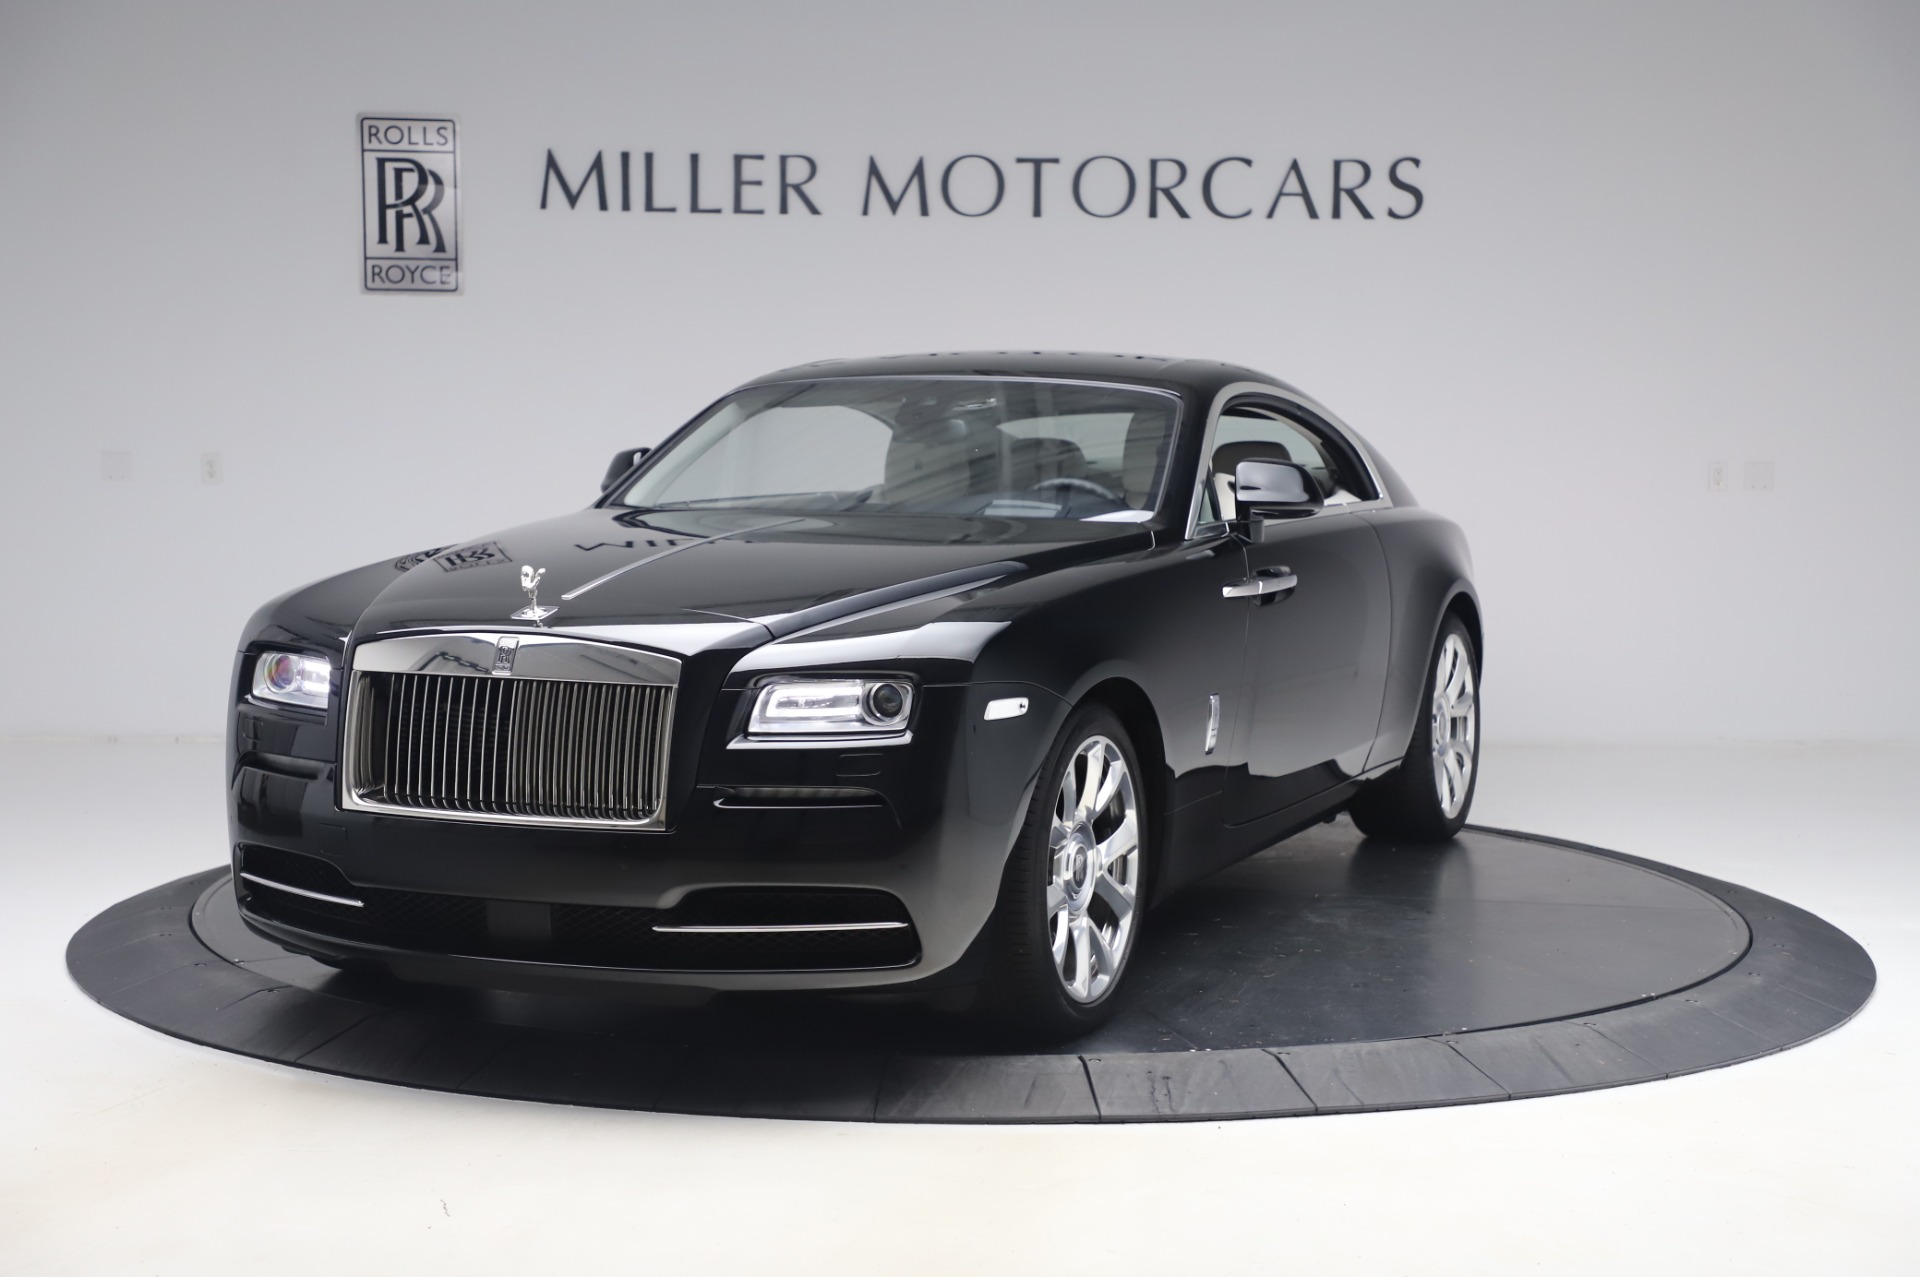 Used 2015 Rolls-Royce Wraith Base for sale Sold at Rolls-Royce Motor Cars Greenwich in Greenwich CT 06830 1